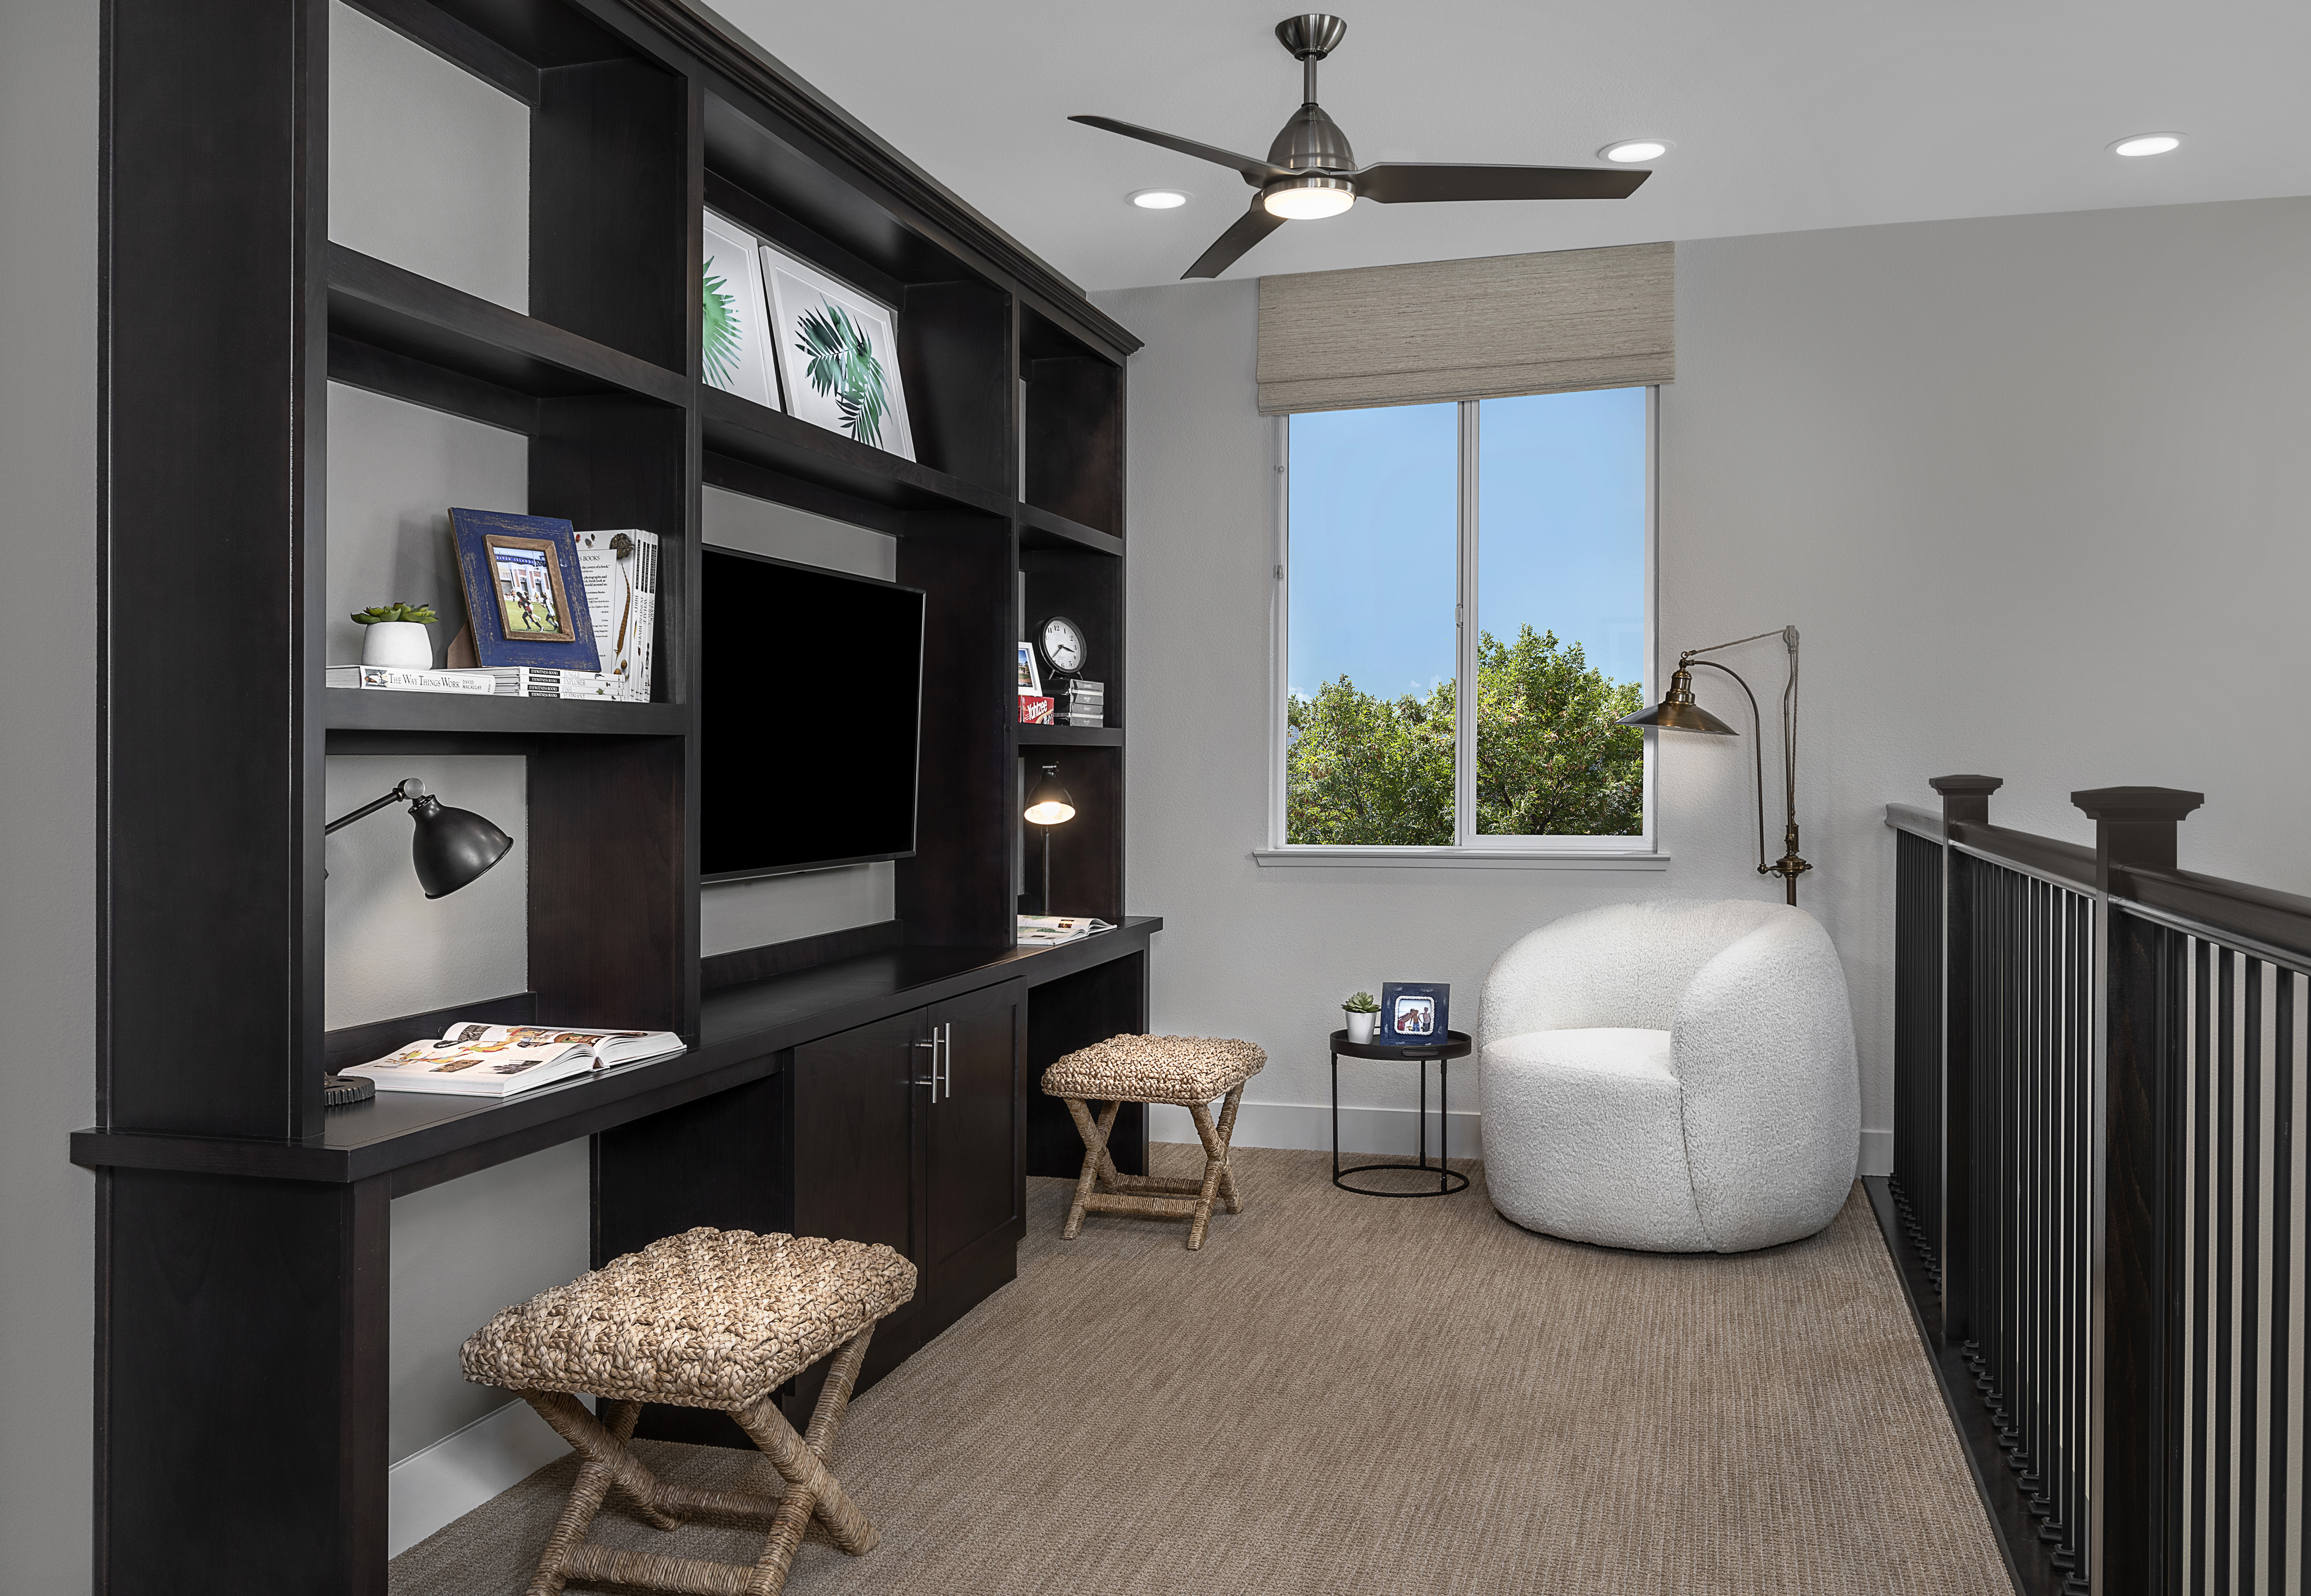 Tips for Setting Up a Productive Home Office